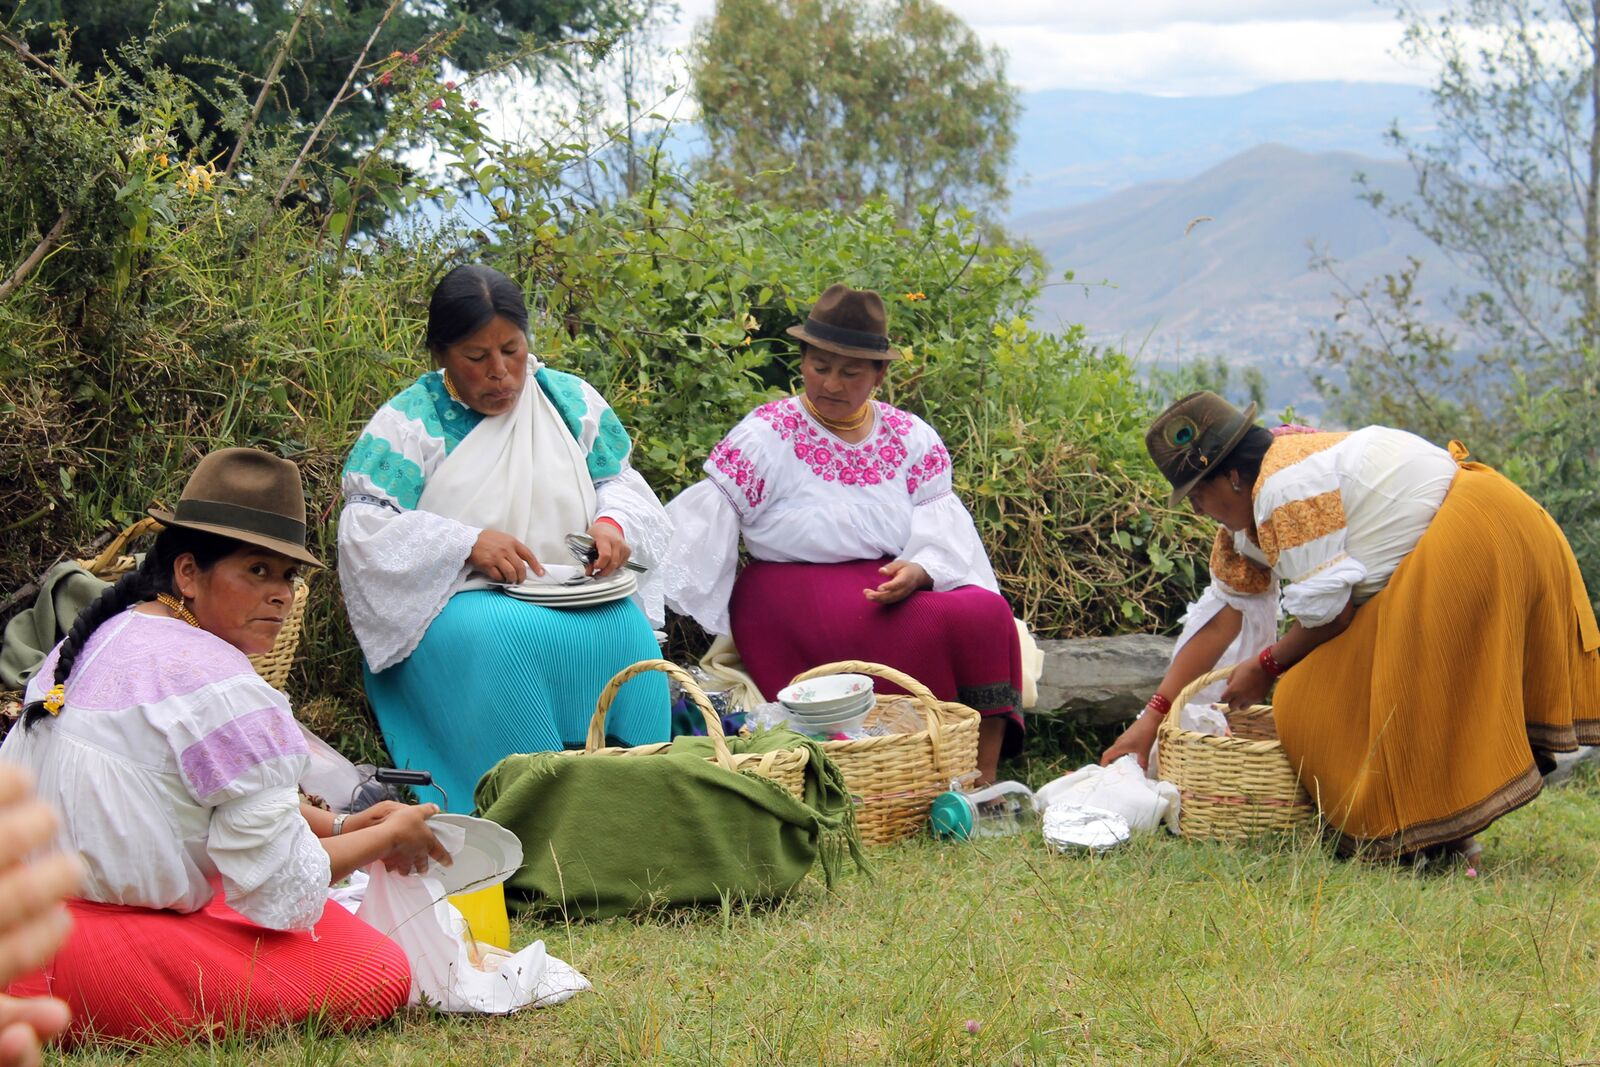 Equadorian women